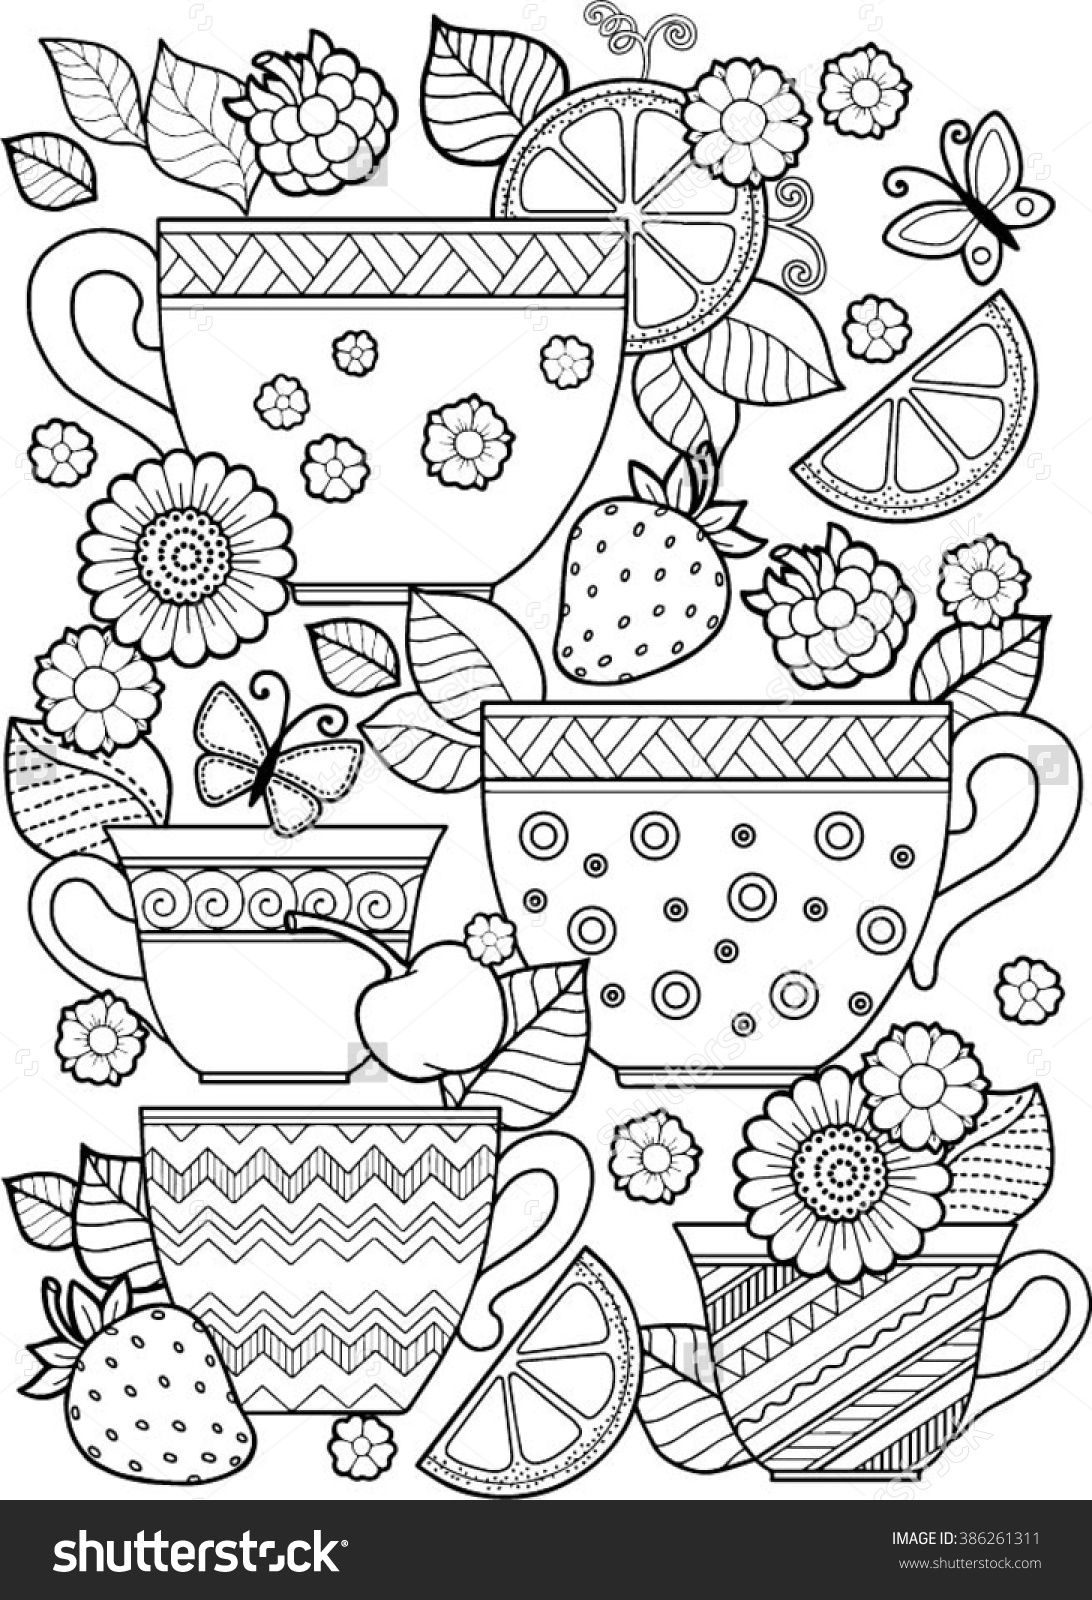 Best Cute Coloring Pages Ideas On Pinterest Tea Cup Pic Printible For Adults Watermelon. Best ...